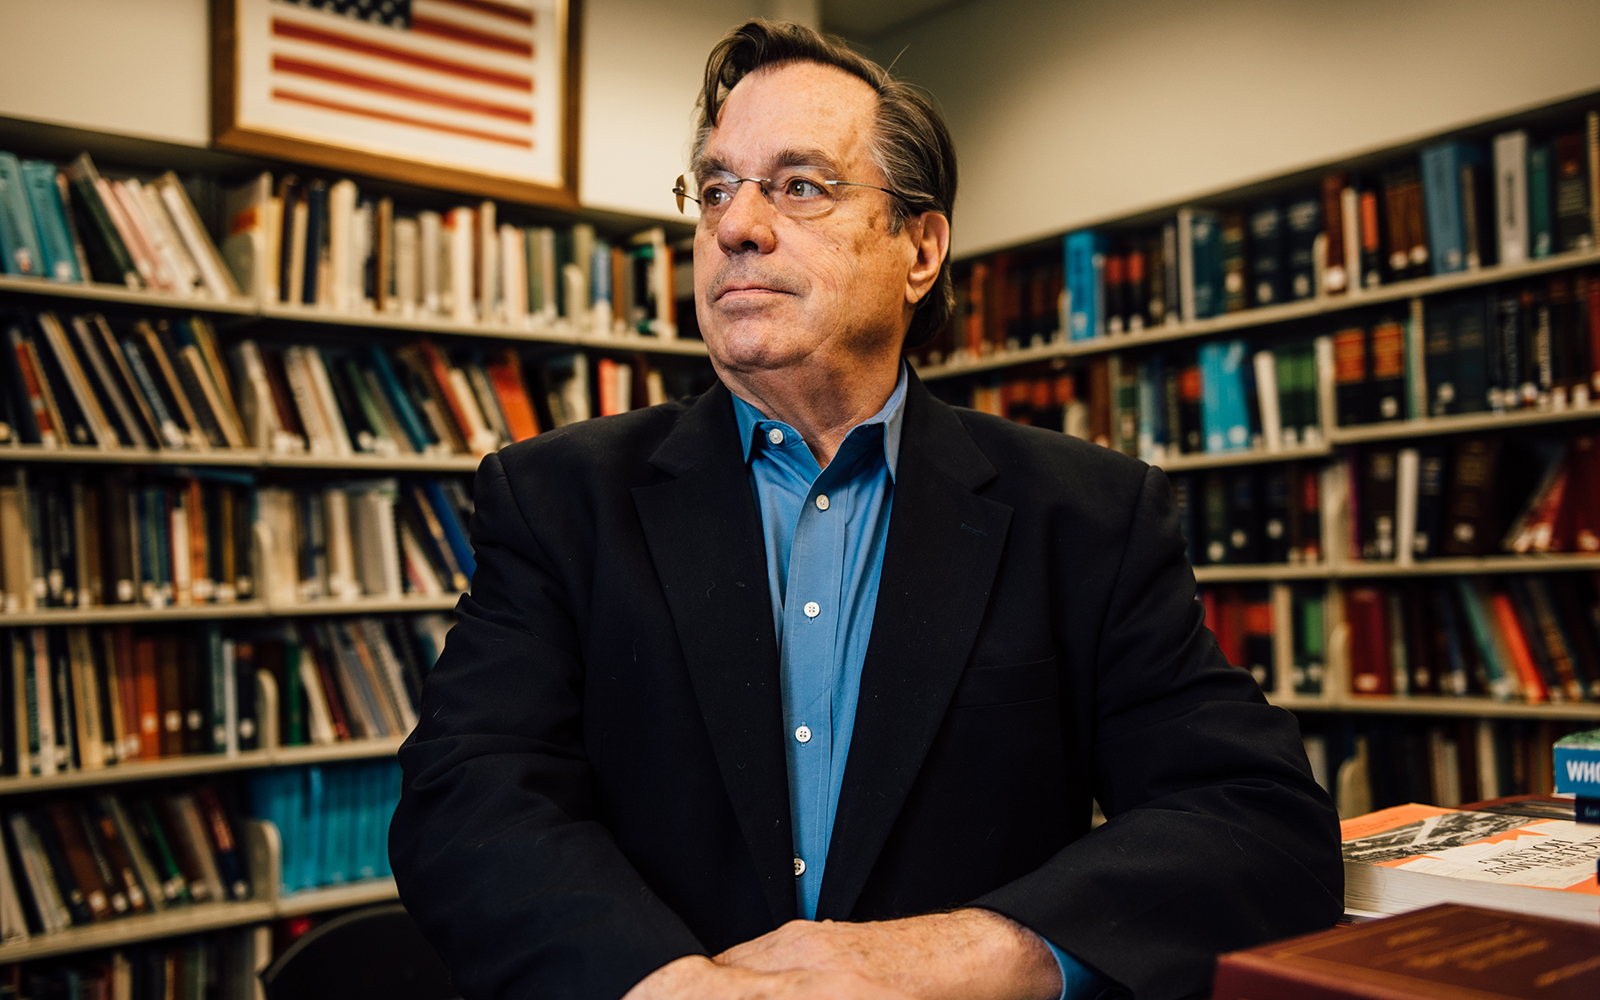 Fred Carstensen (pictured above) leads the Connecticut Center for Economic Analysis. (Nathan Oldham / UConn School of Business)